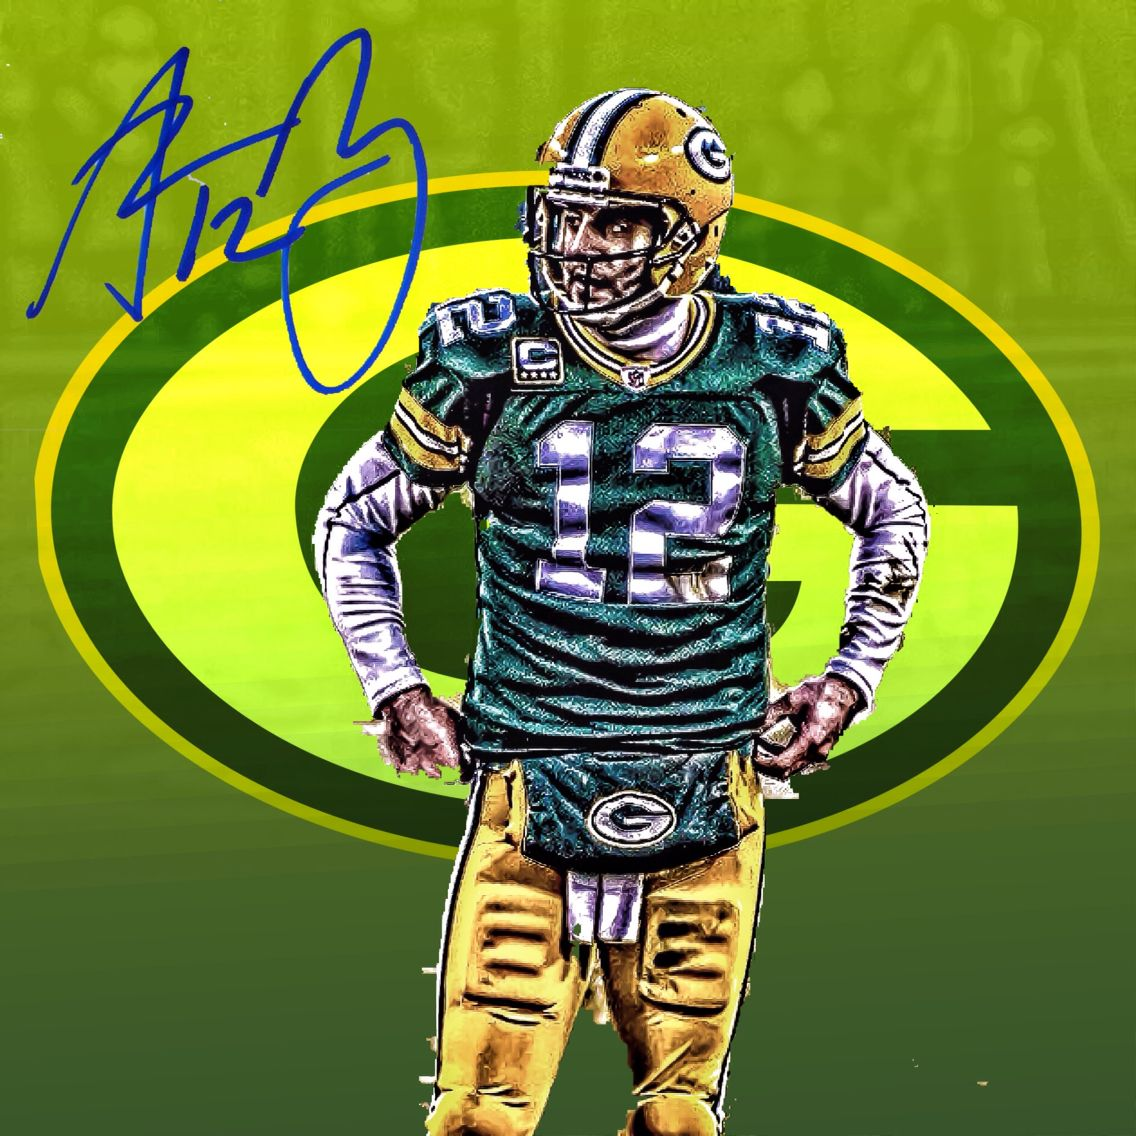 Cal Alum Aaron Rodgers Playing Quarterback For The Green Bay Packers Green Bay Packers Aaron Rodgers Green Bay Packers Green Bay